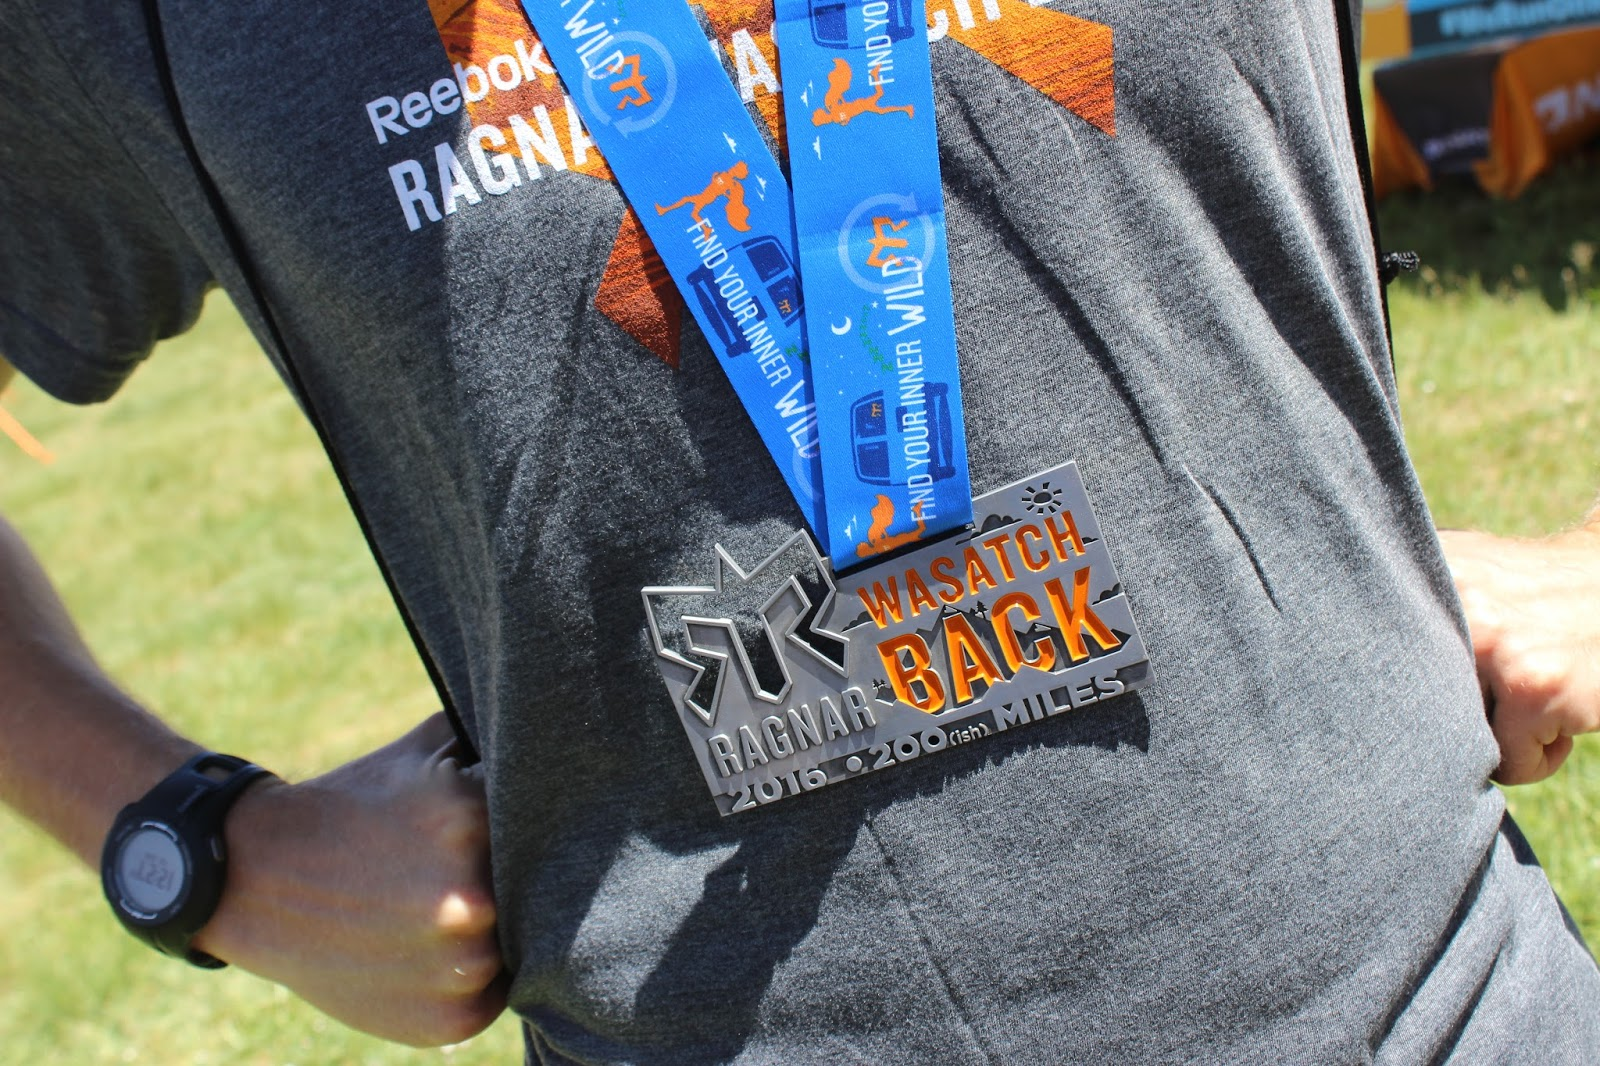 2016 Ragnar Wasatch Back Medal